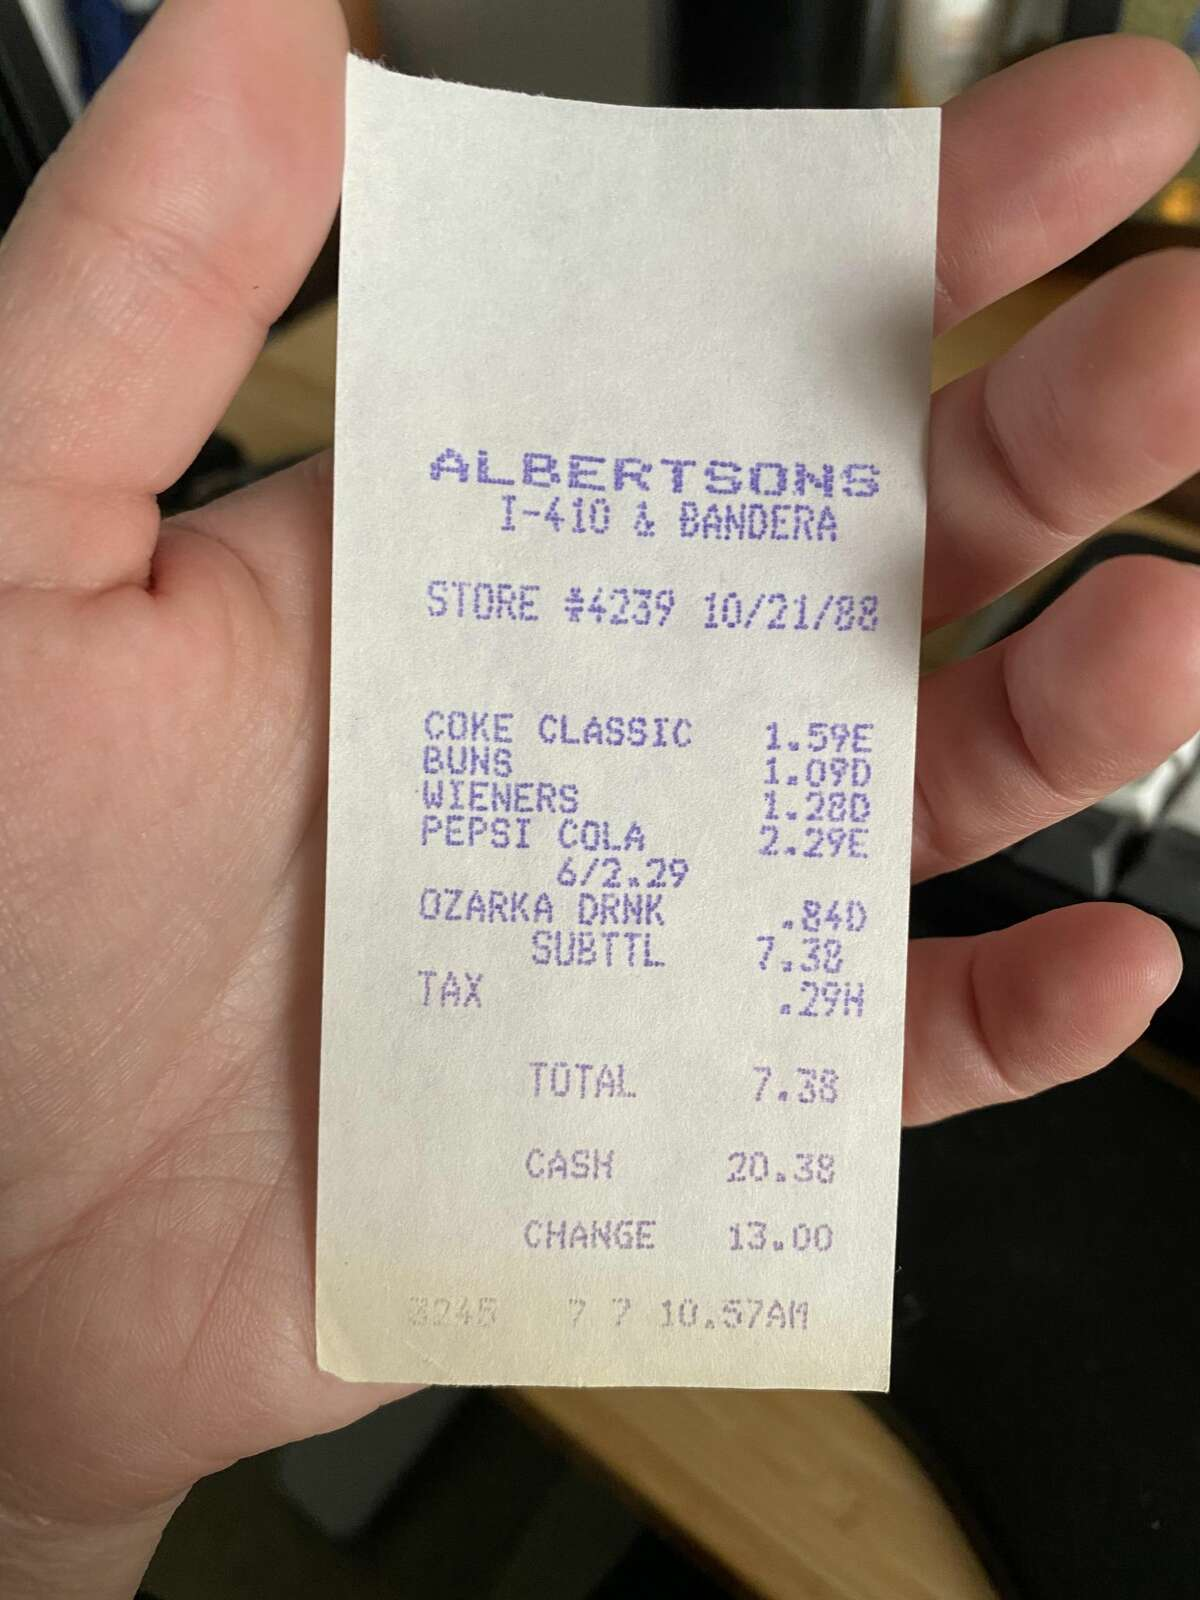 San Antonian Stephanie Garza recently found her local Albertsons store after finding a 33-year-old receipt she found in a book she bought at Half Price Books in College Station.